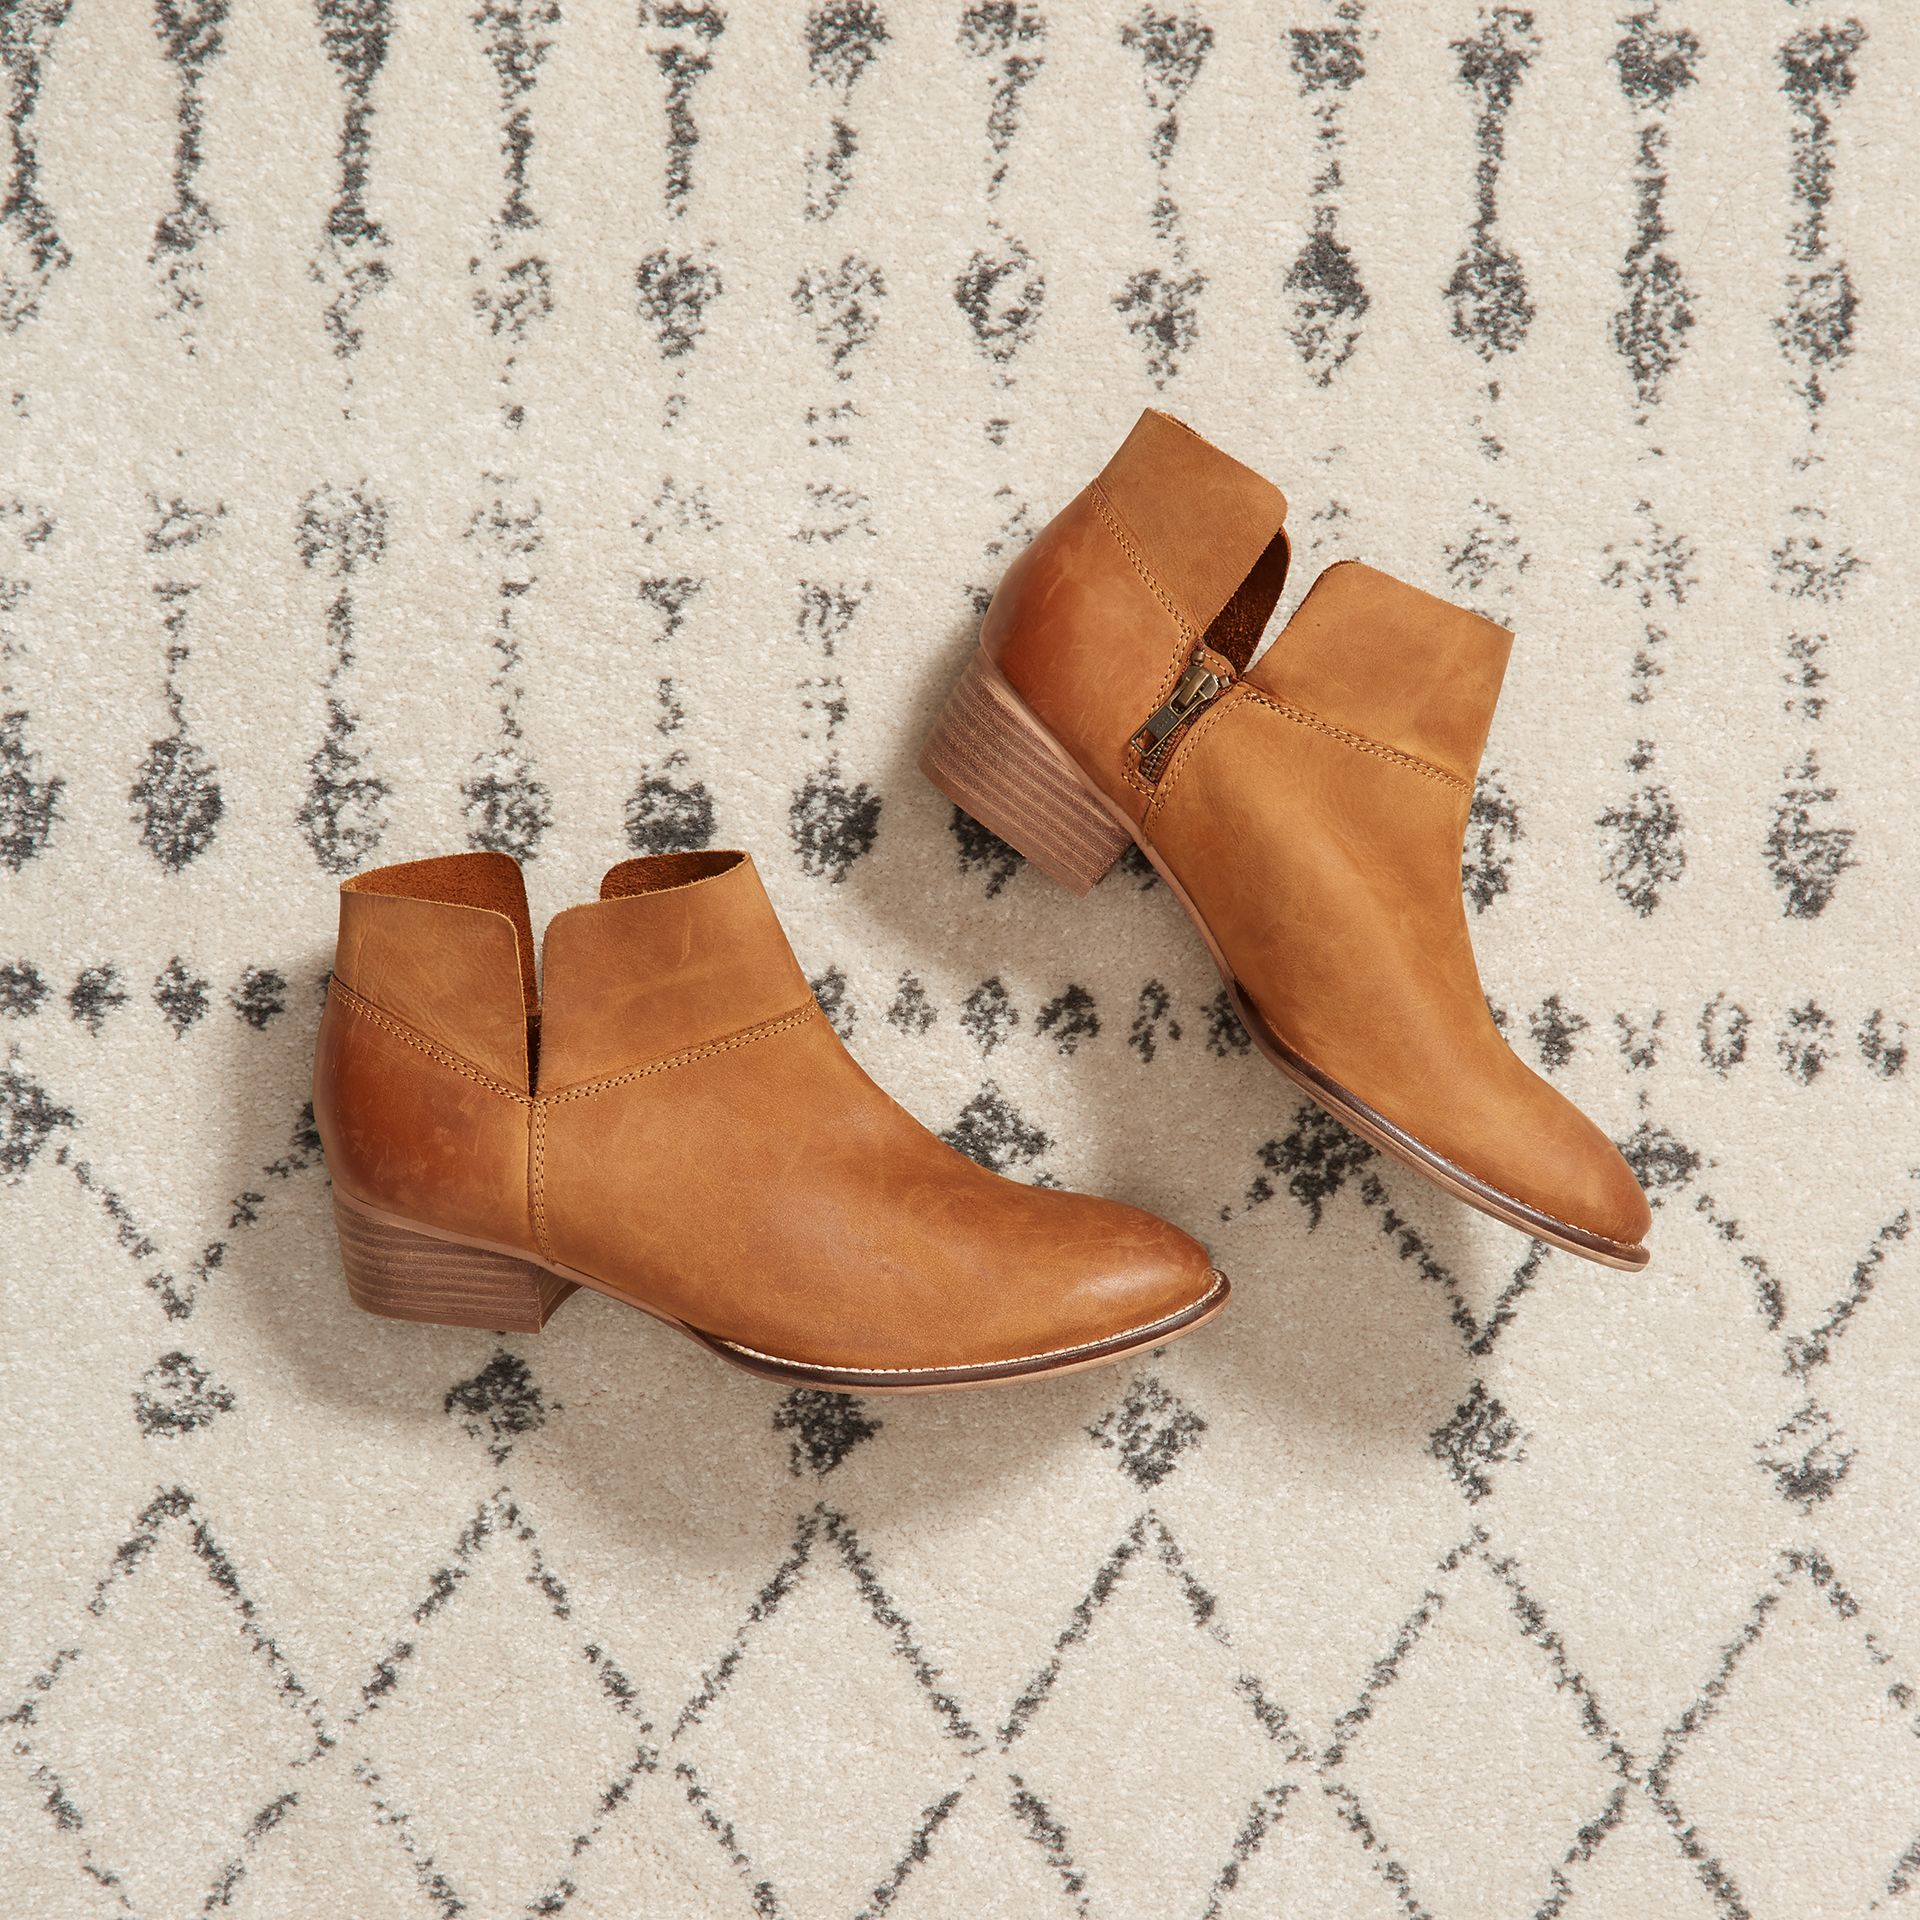 Don't give your boots the boot this spring. Wear them with sundresses, shorts, skinnies & more.